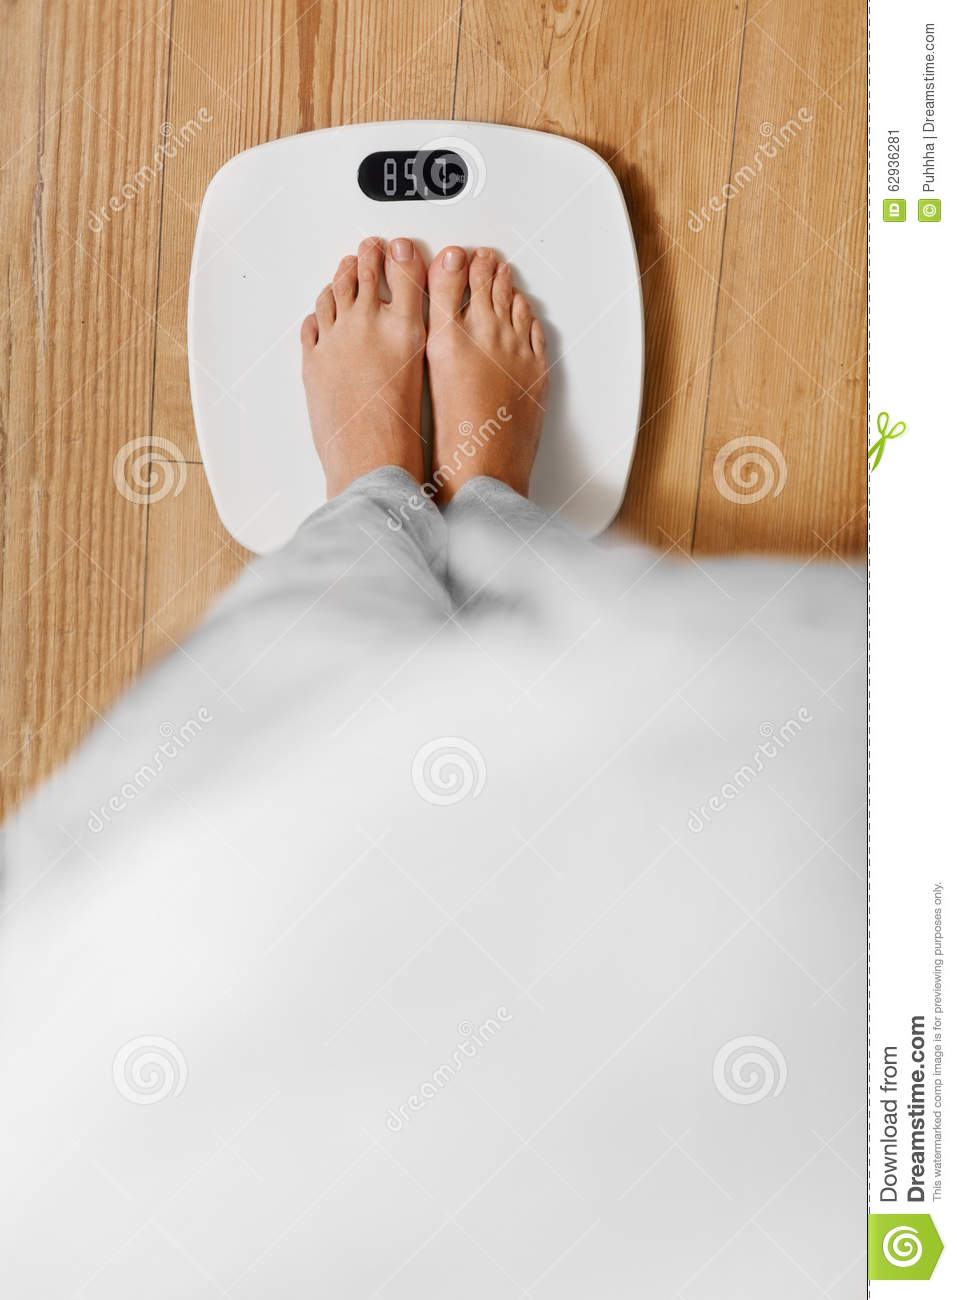 Diet. Female Feet On Weighing Scale. Weight Loss. Healthy Lifestyle.